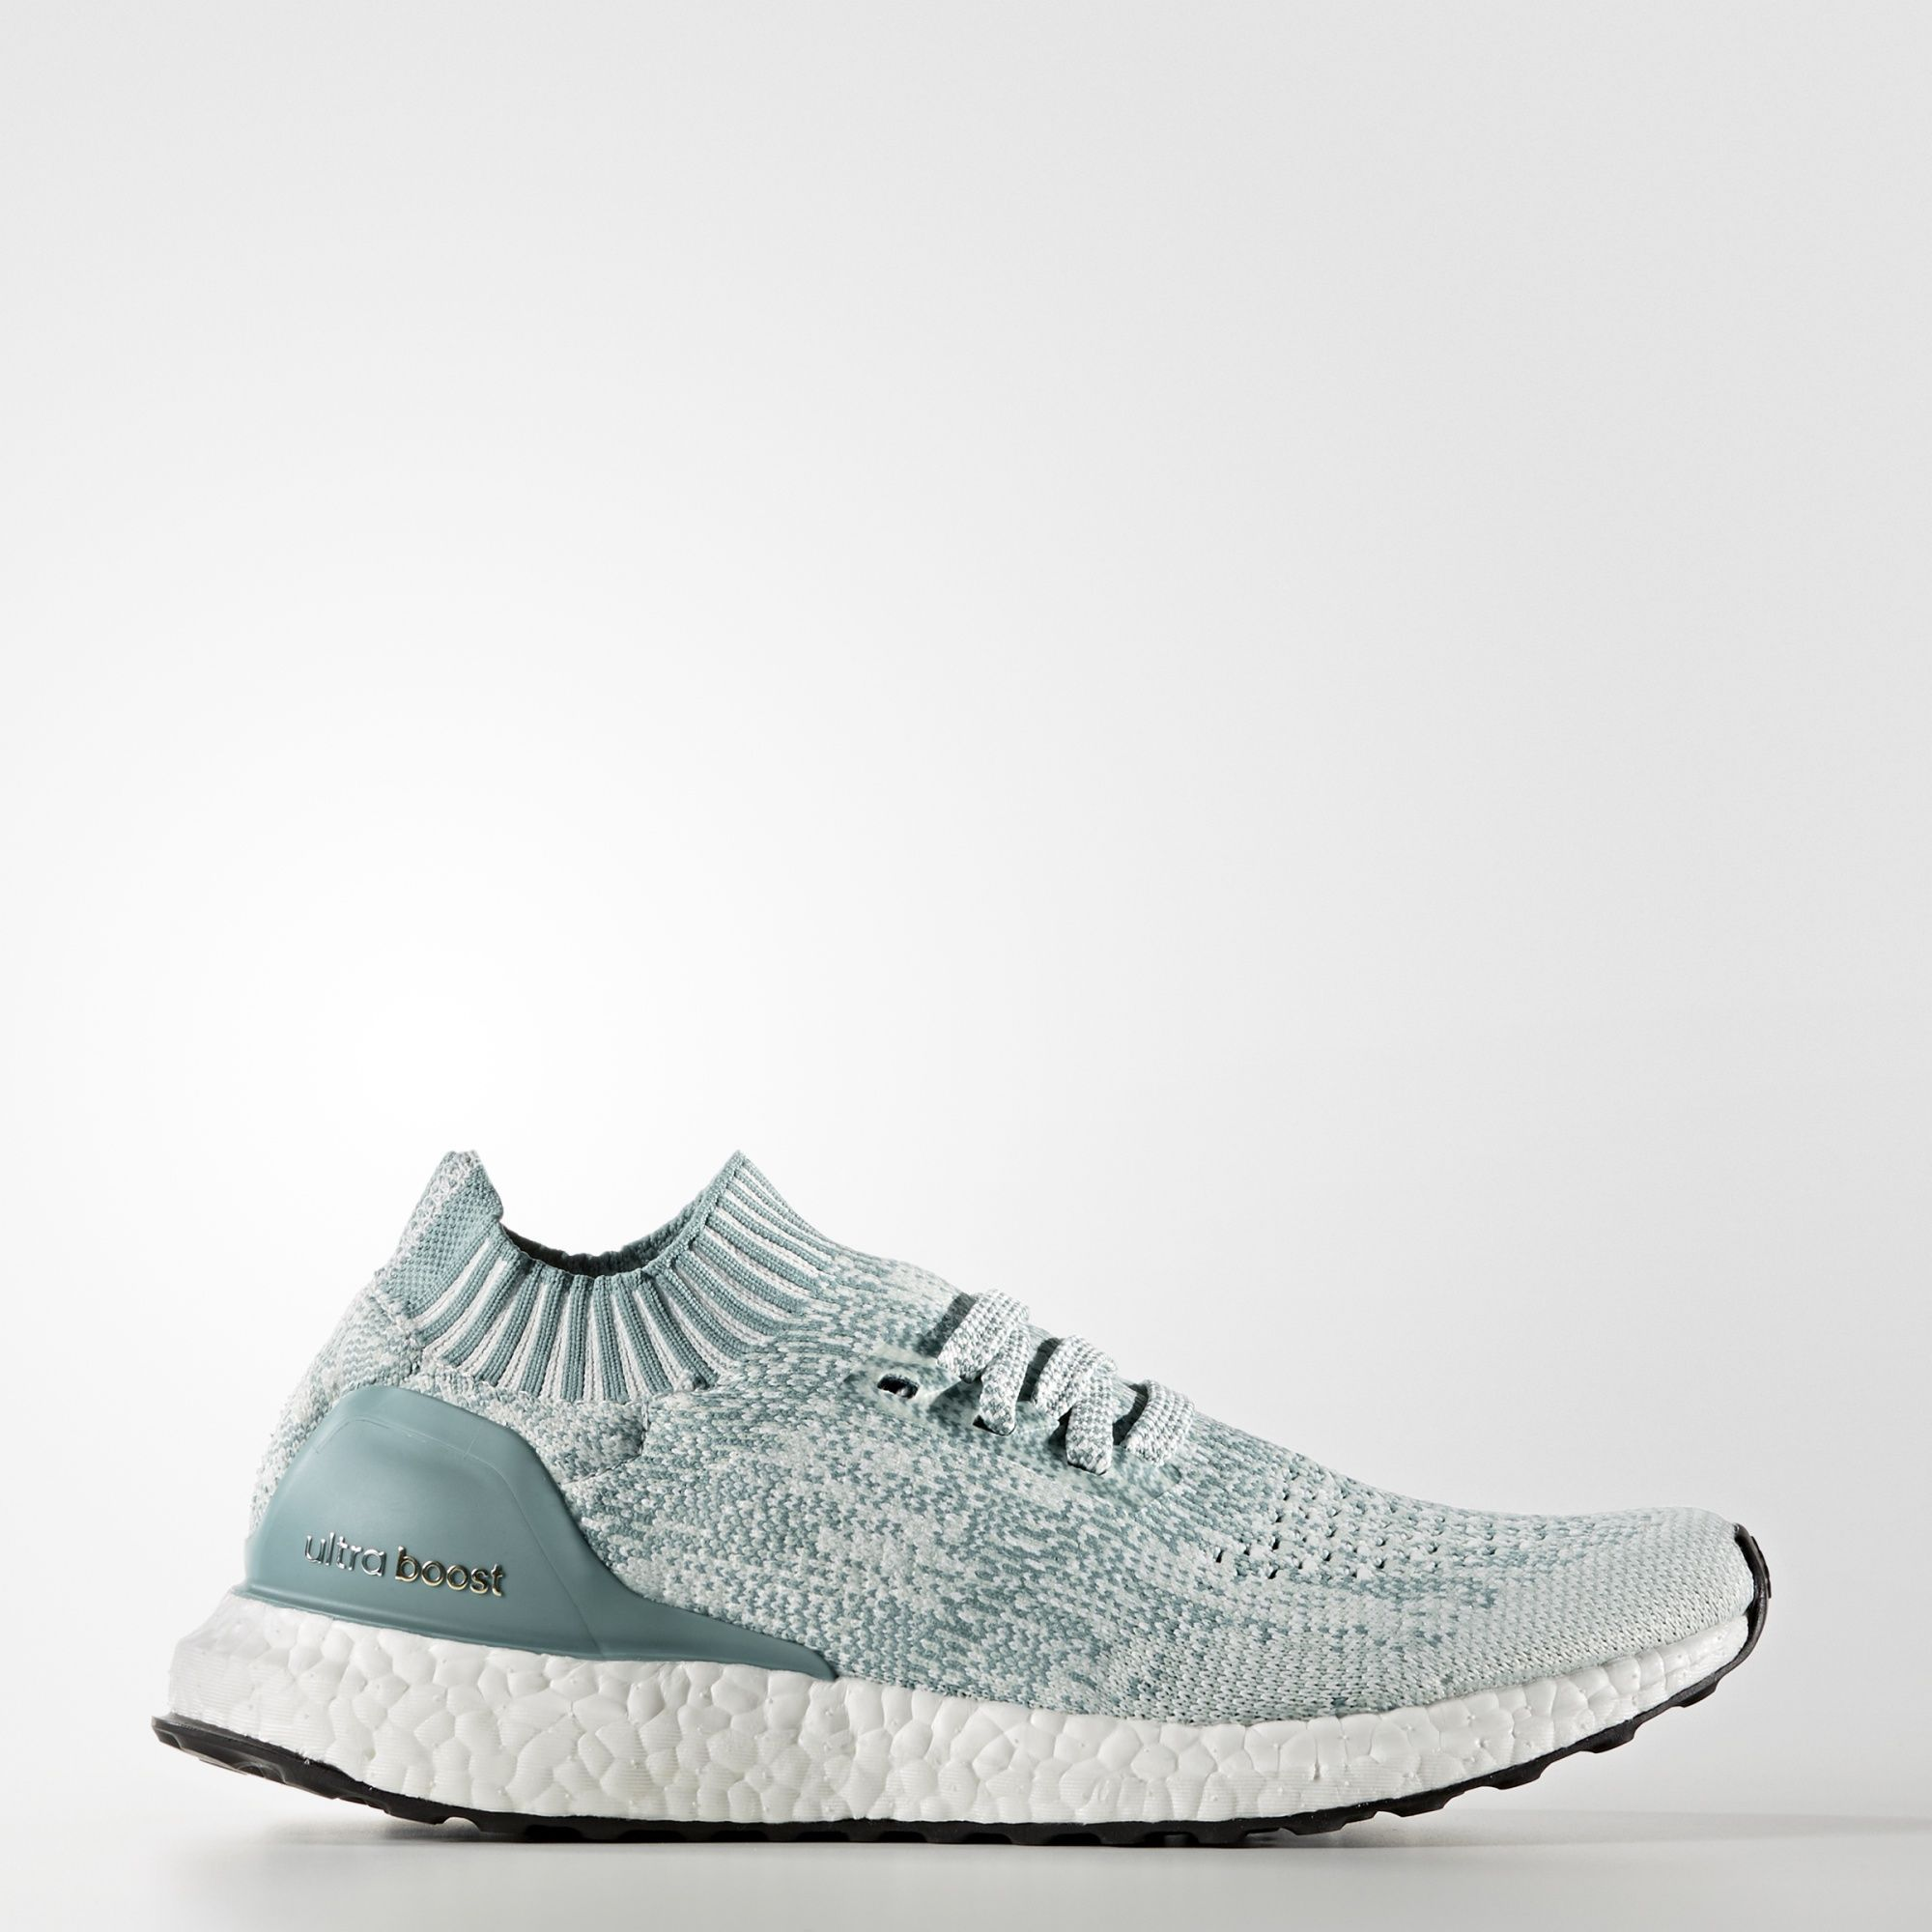 best service 0e2bf 96ace adidas - Ultra Boost Uncaged Shoes | walk | Adidas ultra ...